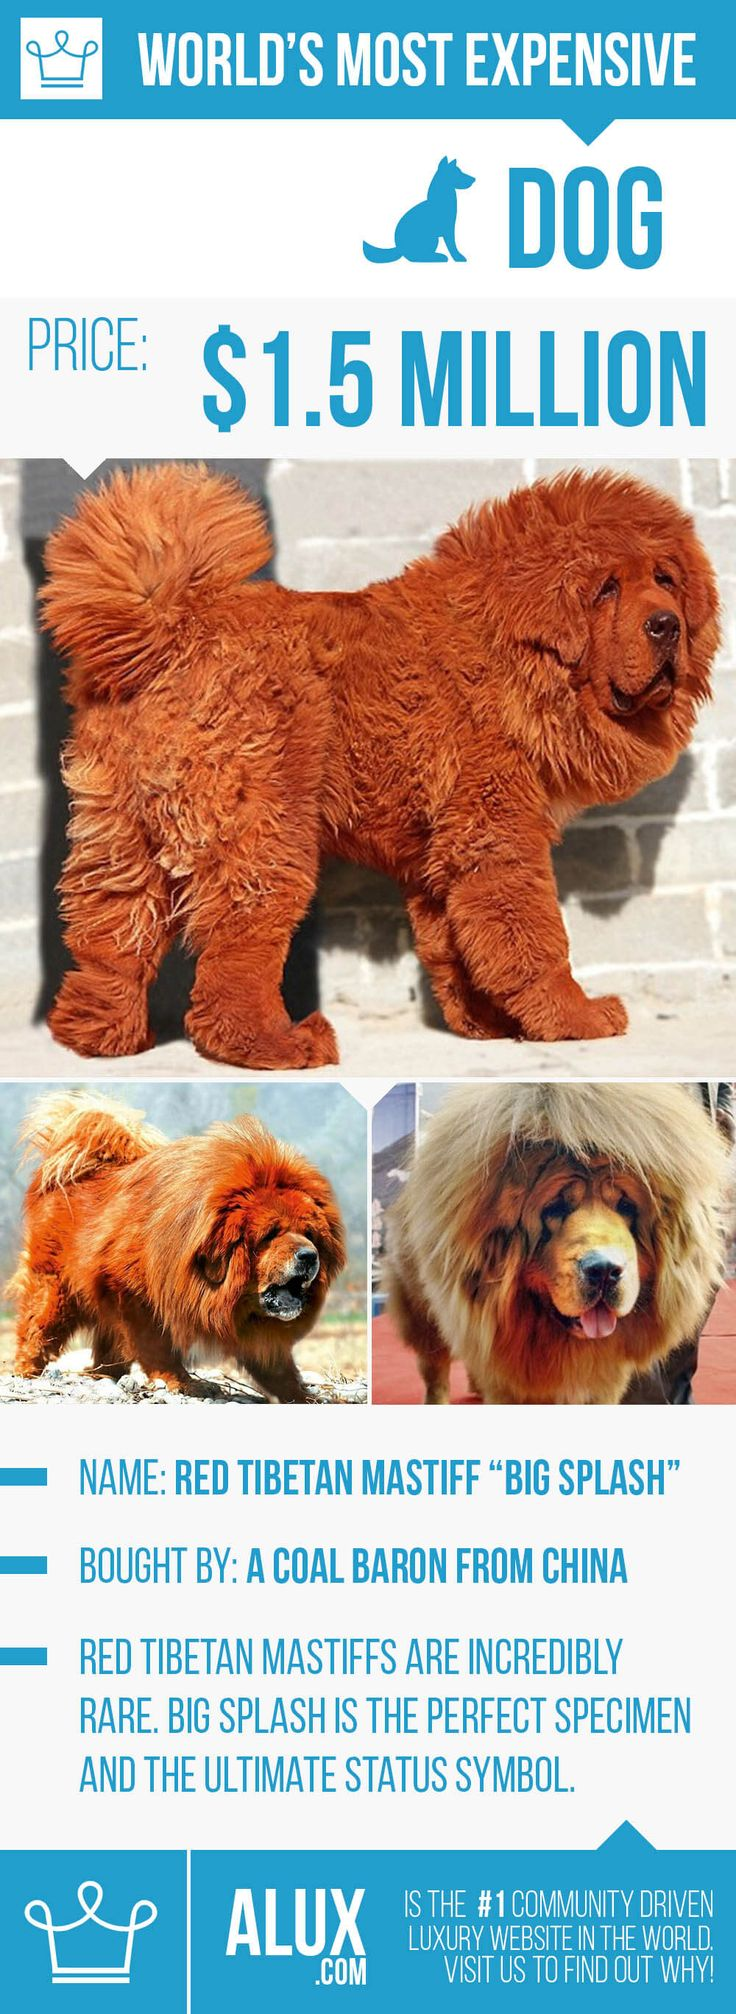 most expensive dog in the world ealuxe alux red tibetan mastiff price how much pictures infographic. Too much hair